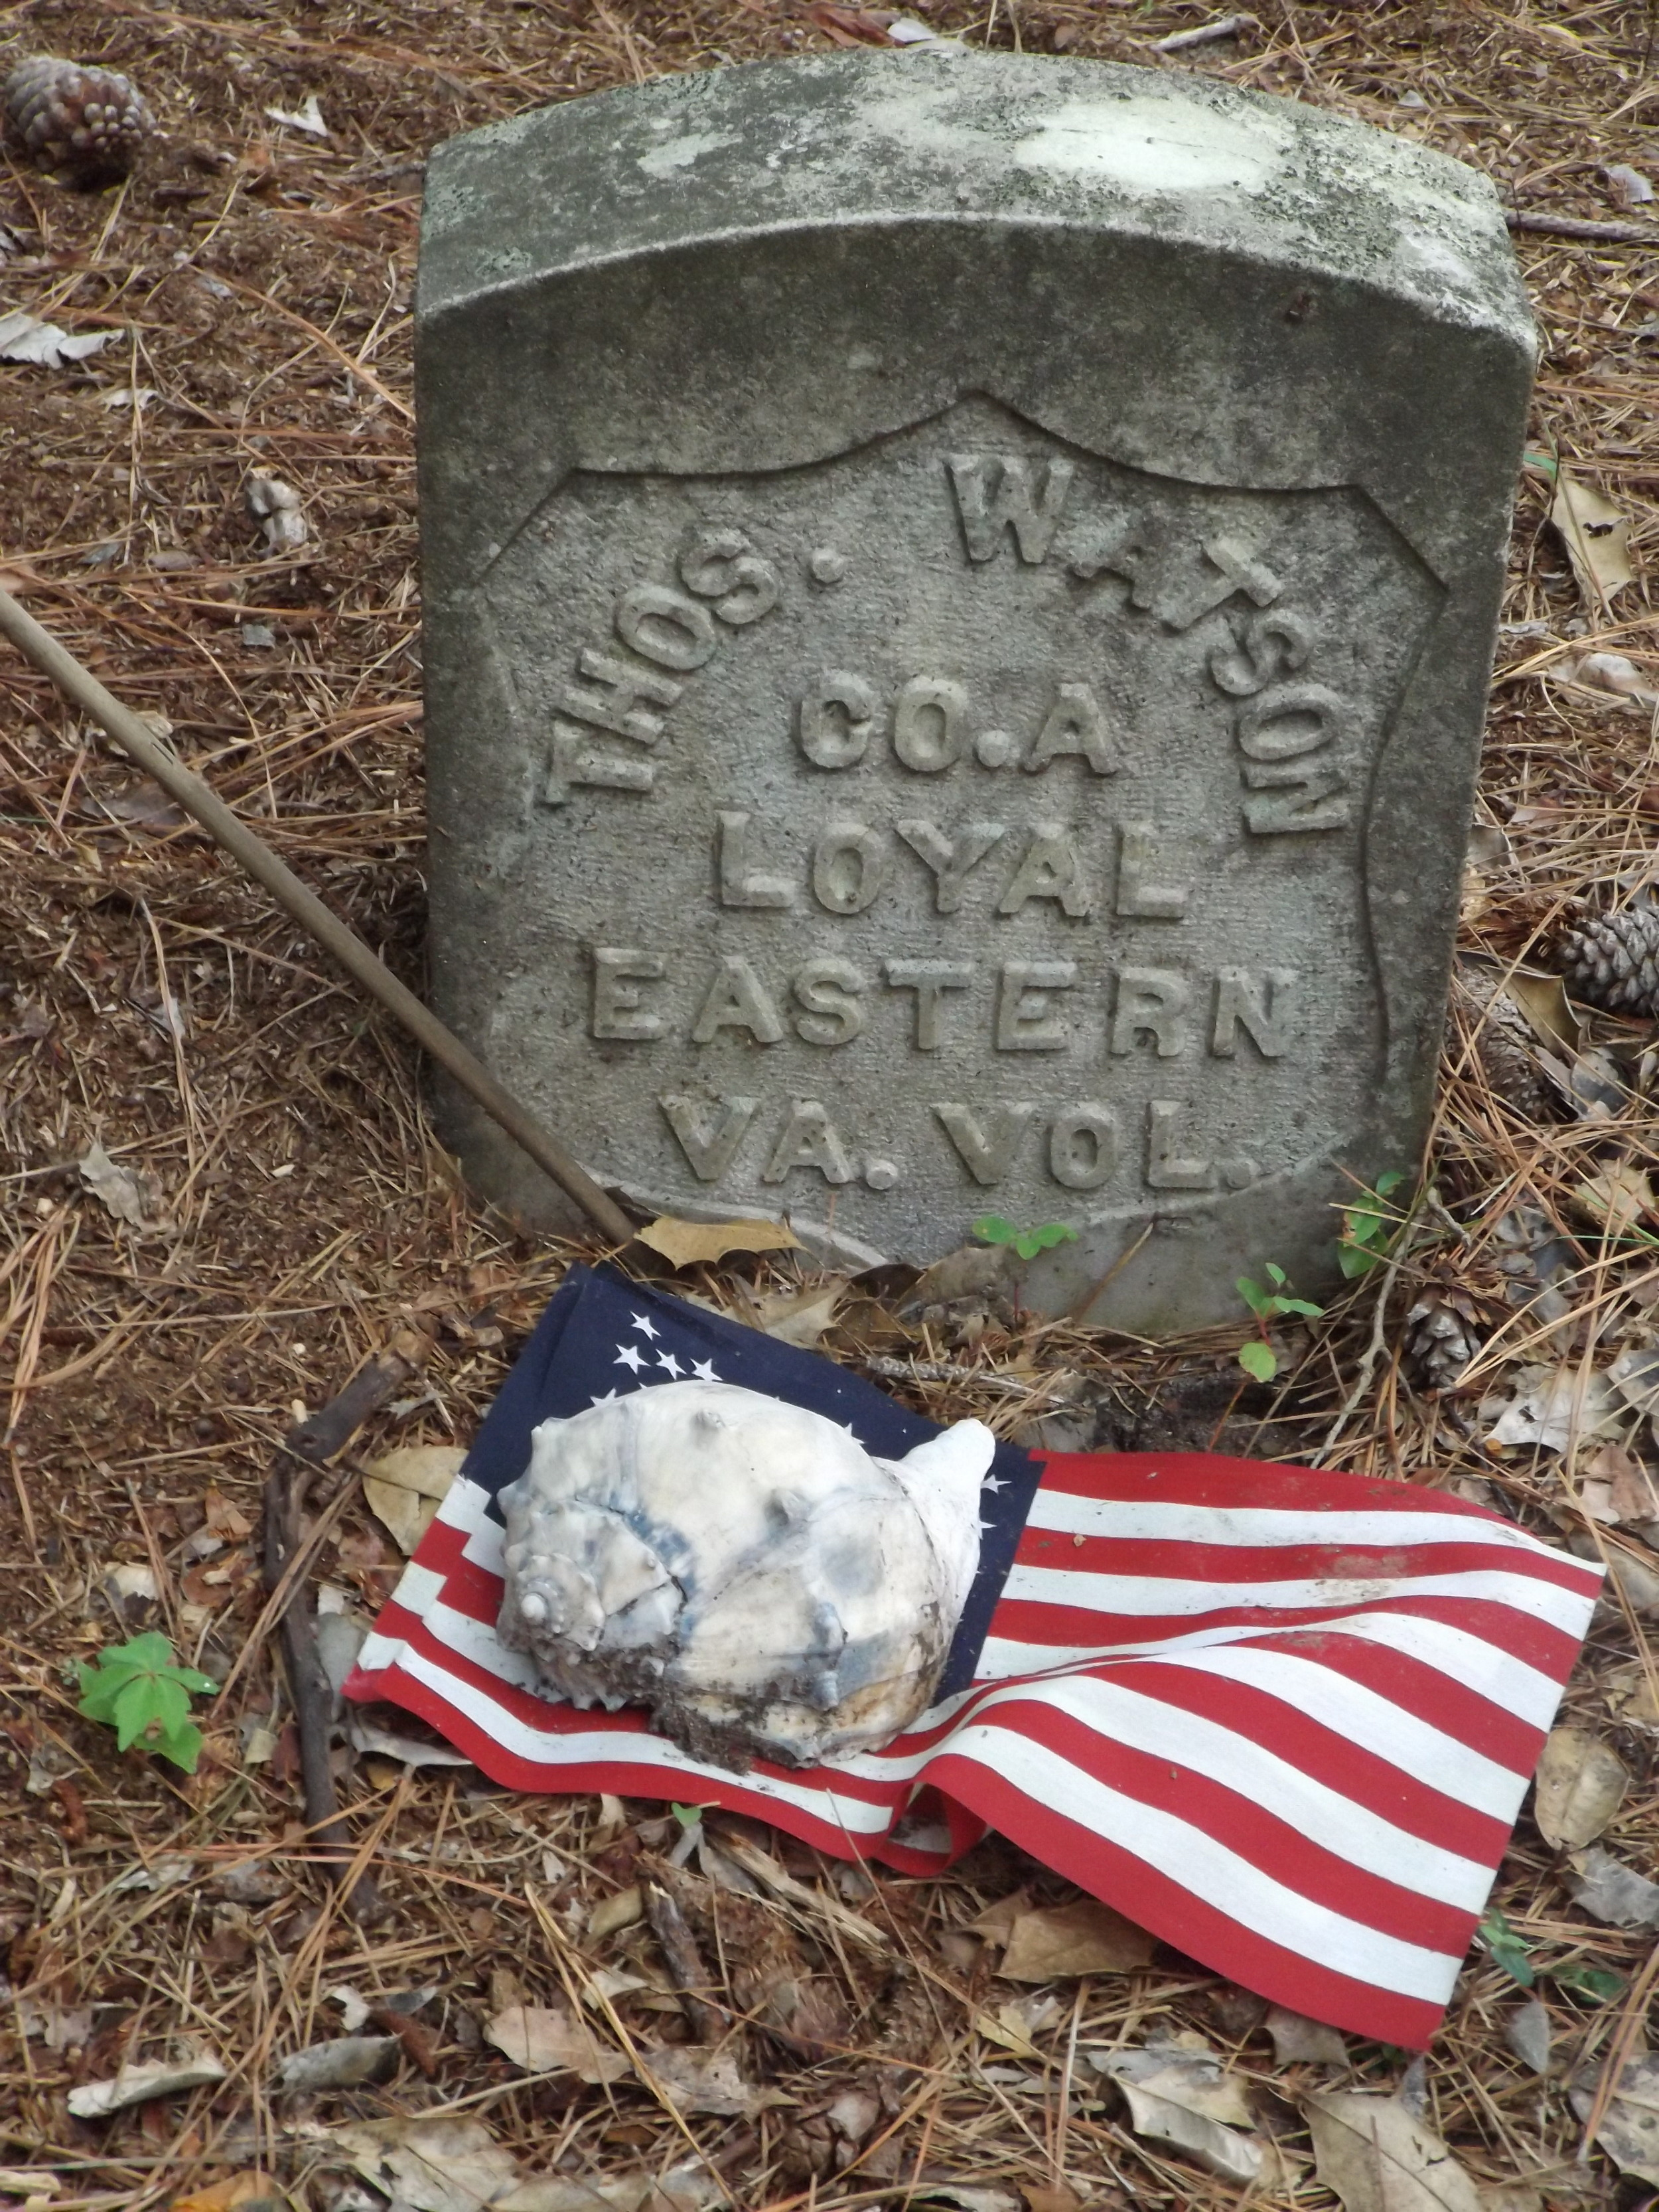 One of the few headstones still standing in the cemetery, the grave of Thomas Watson reveals the island's Civil War past.